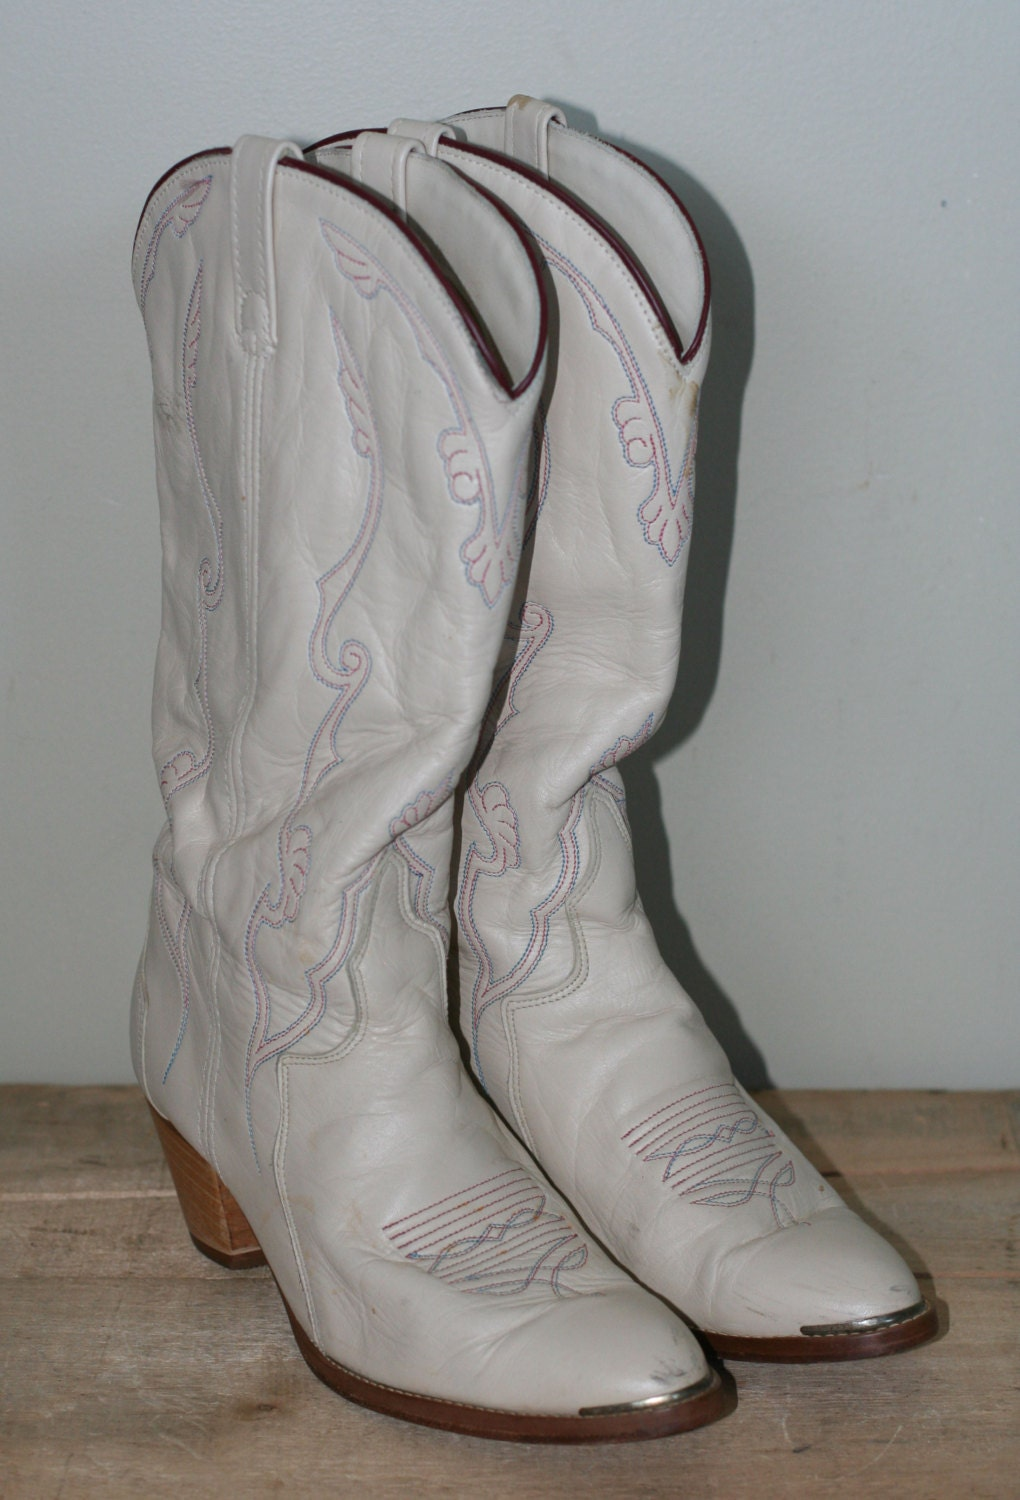 vintage womens high heel cowboy boots size 10 by tomtomvintage